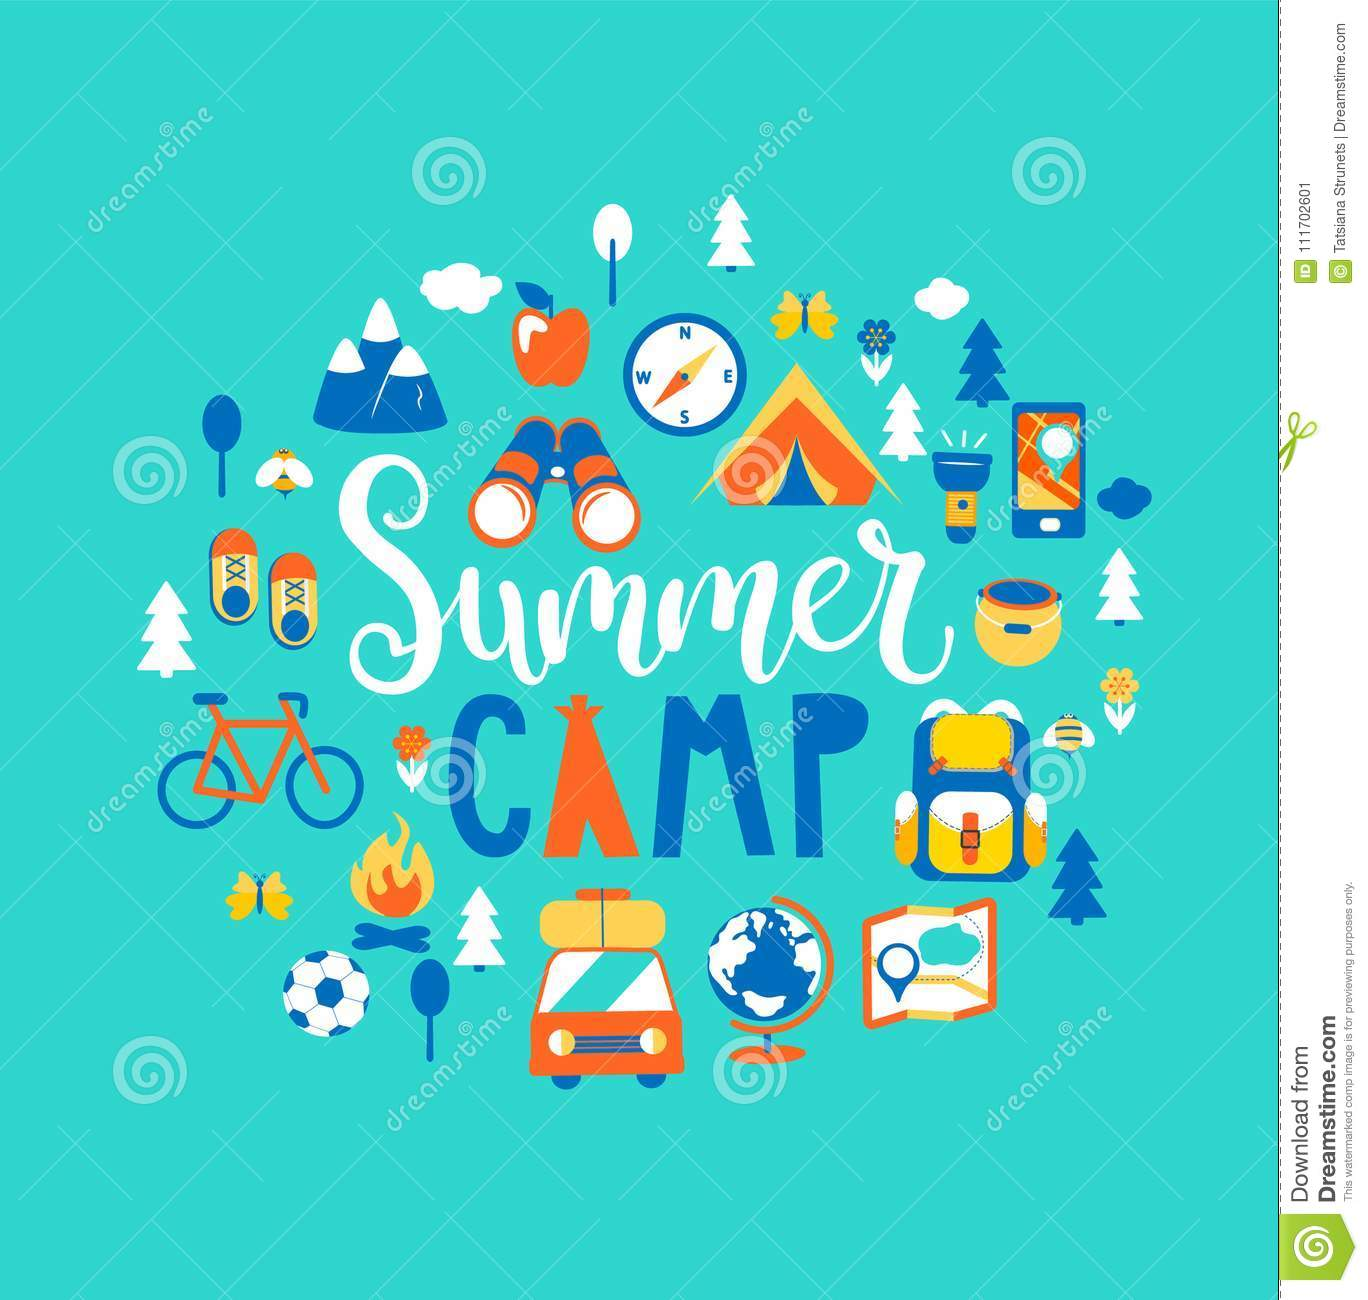 Summer Camp With A Lot Of Camping Equipment. Stock Vector ...